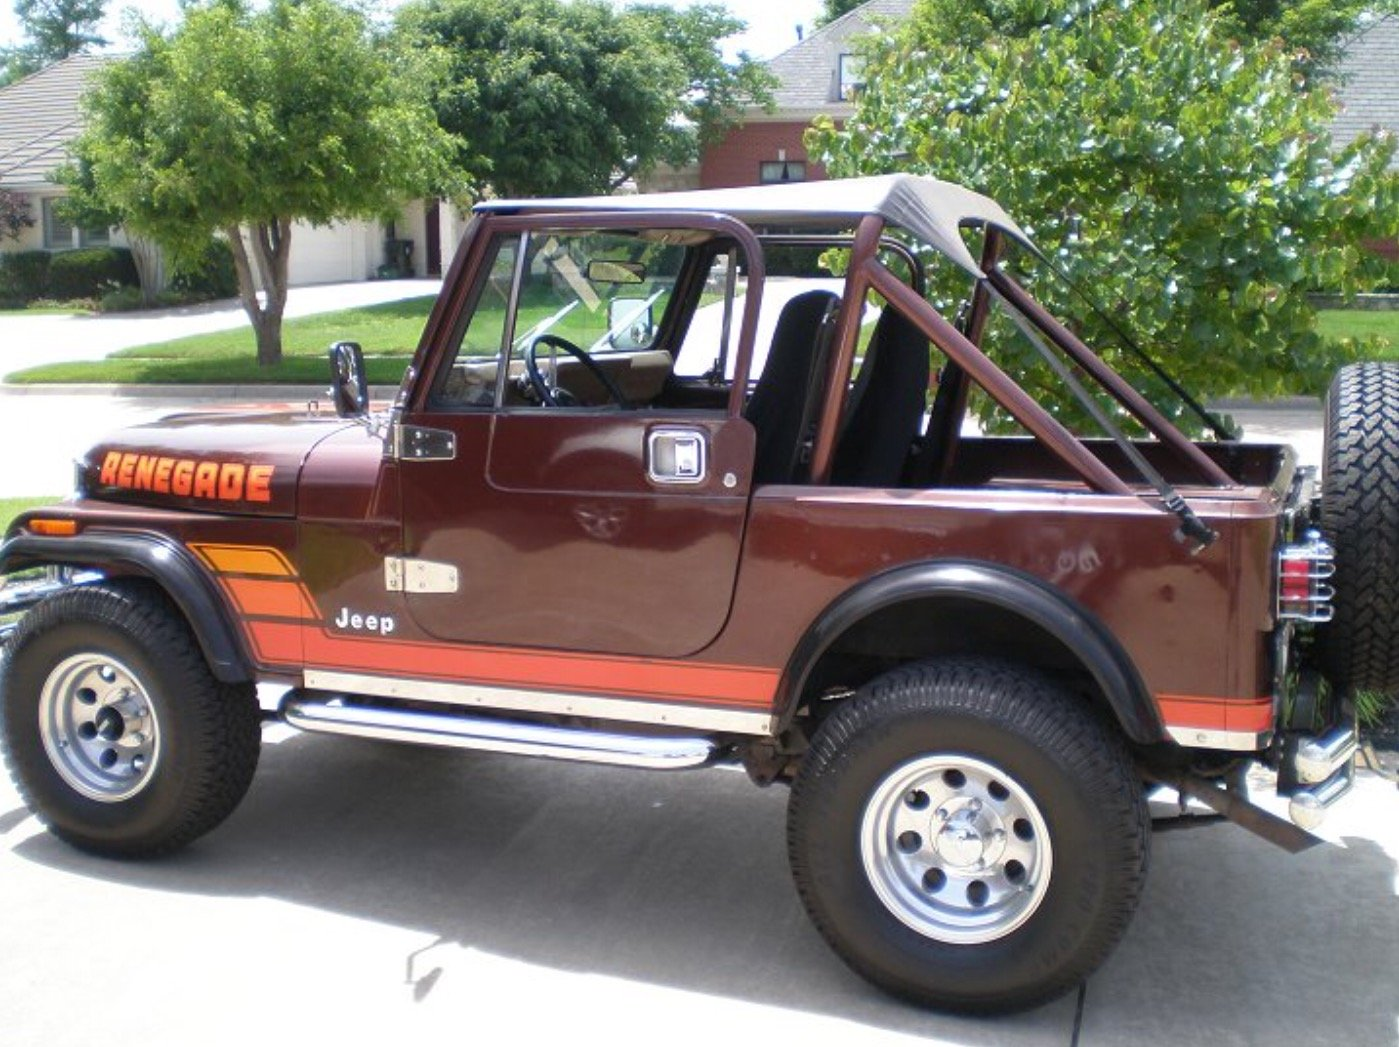 1982 Jeep cj7 project For Sale (picture 1 of 6)